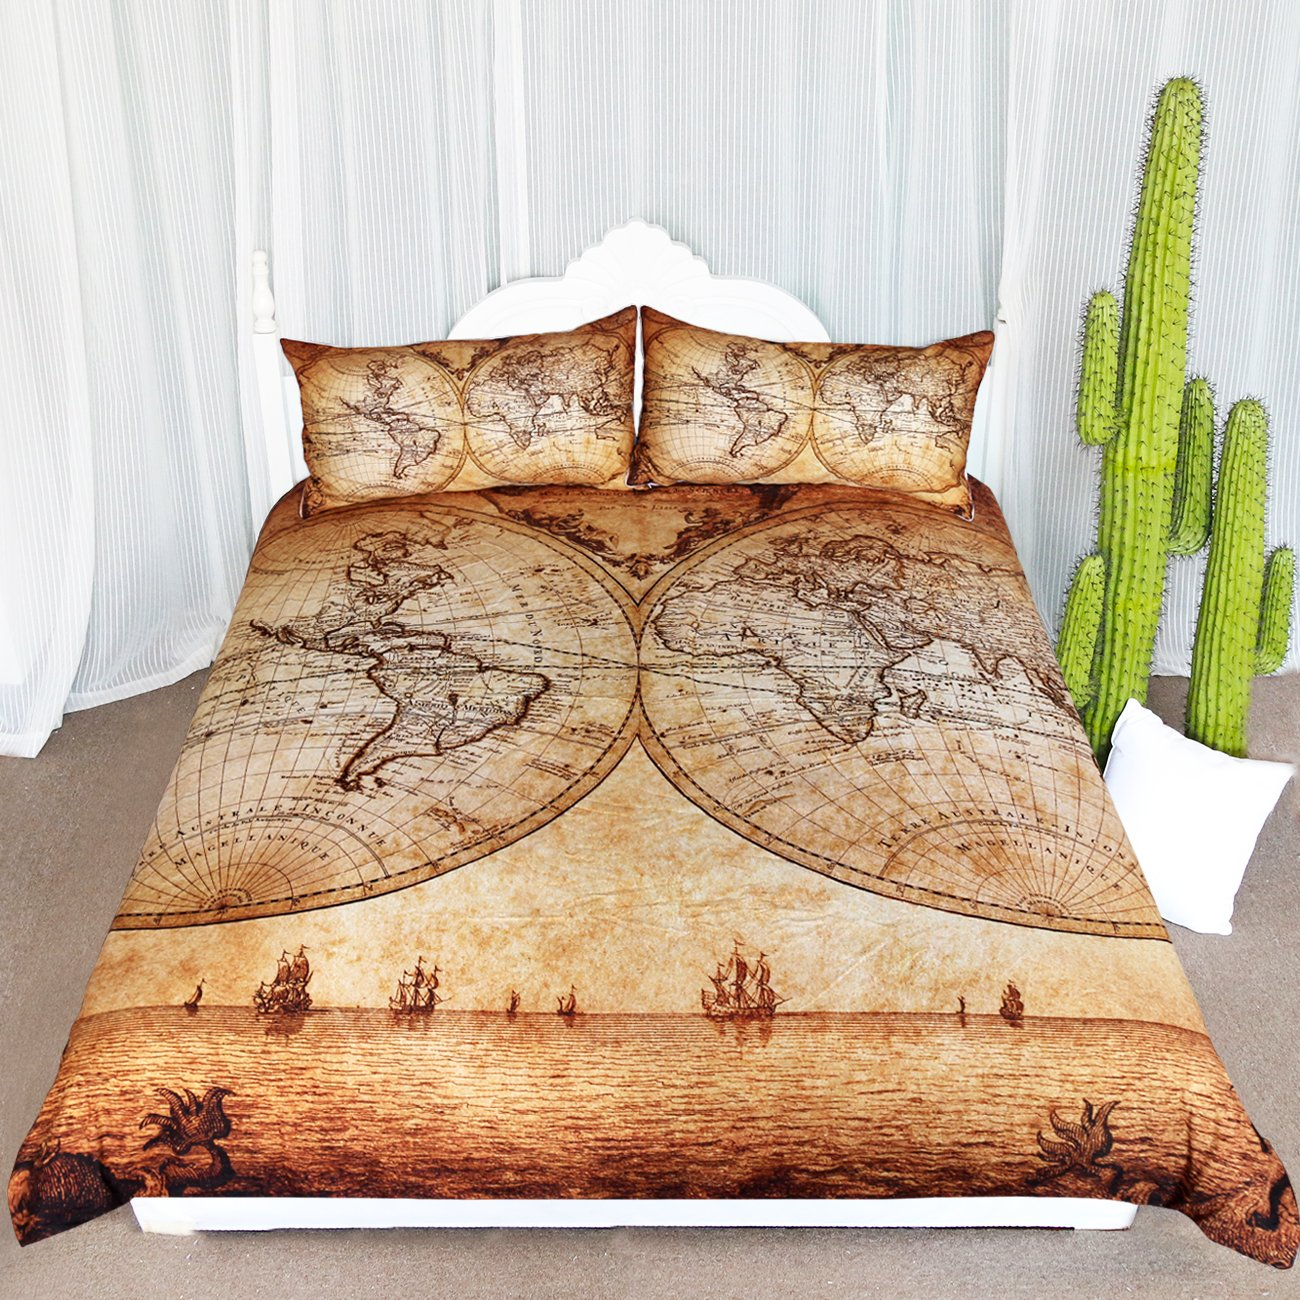 ARIGHTEX Vintage Map Bedding 3 Pieces Antique Medieval World Map Duvet  Cover for Young Adult Kids Travelers Retro Bedclothes (Twin)